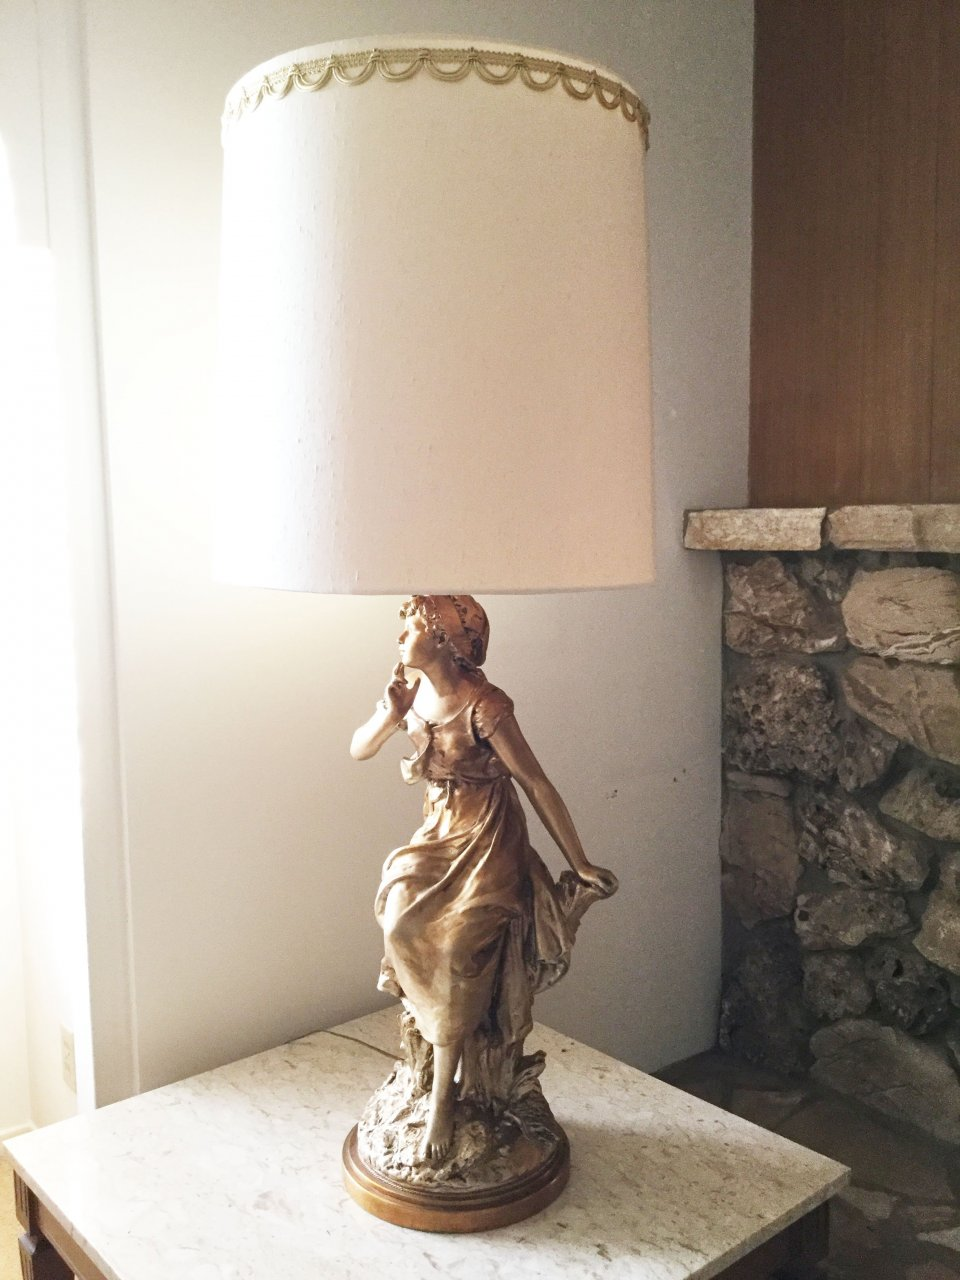 I Have 3 Marbro Lamps With Original Shades They Are In